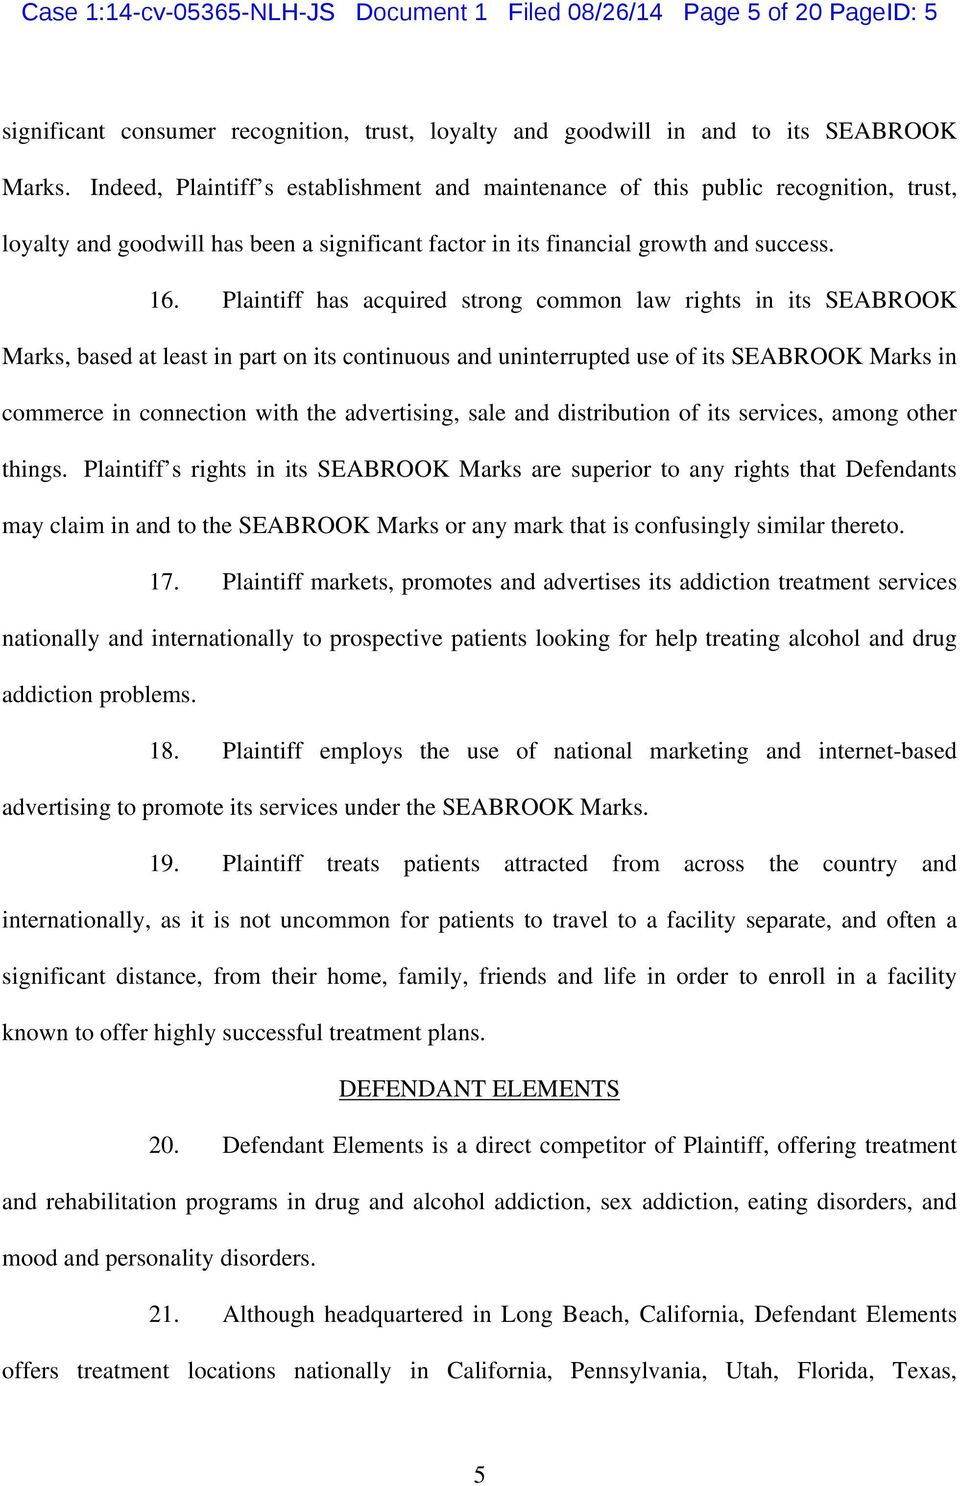 Plaintiff has acquired strong common law rights in its SEABROOK Marks, based at least in part on its continuous and uninterrupted use of its SEABROOK Marks in commerce in connection with the